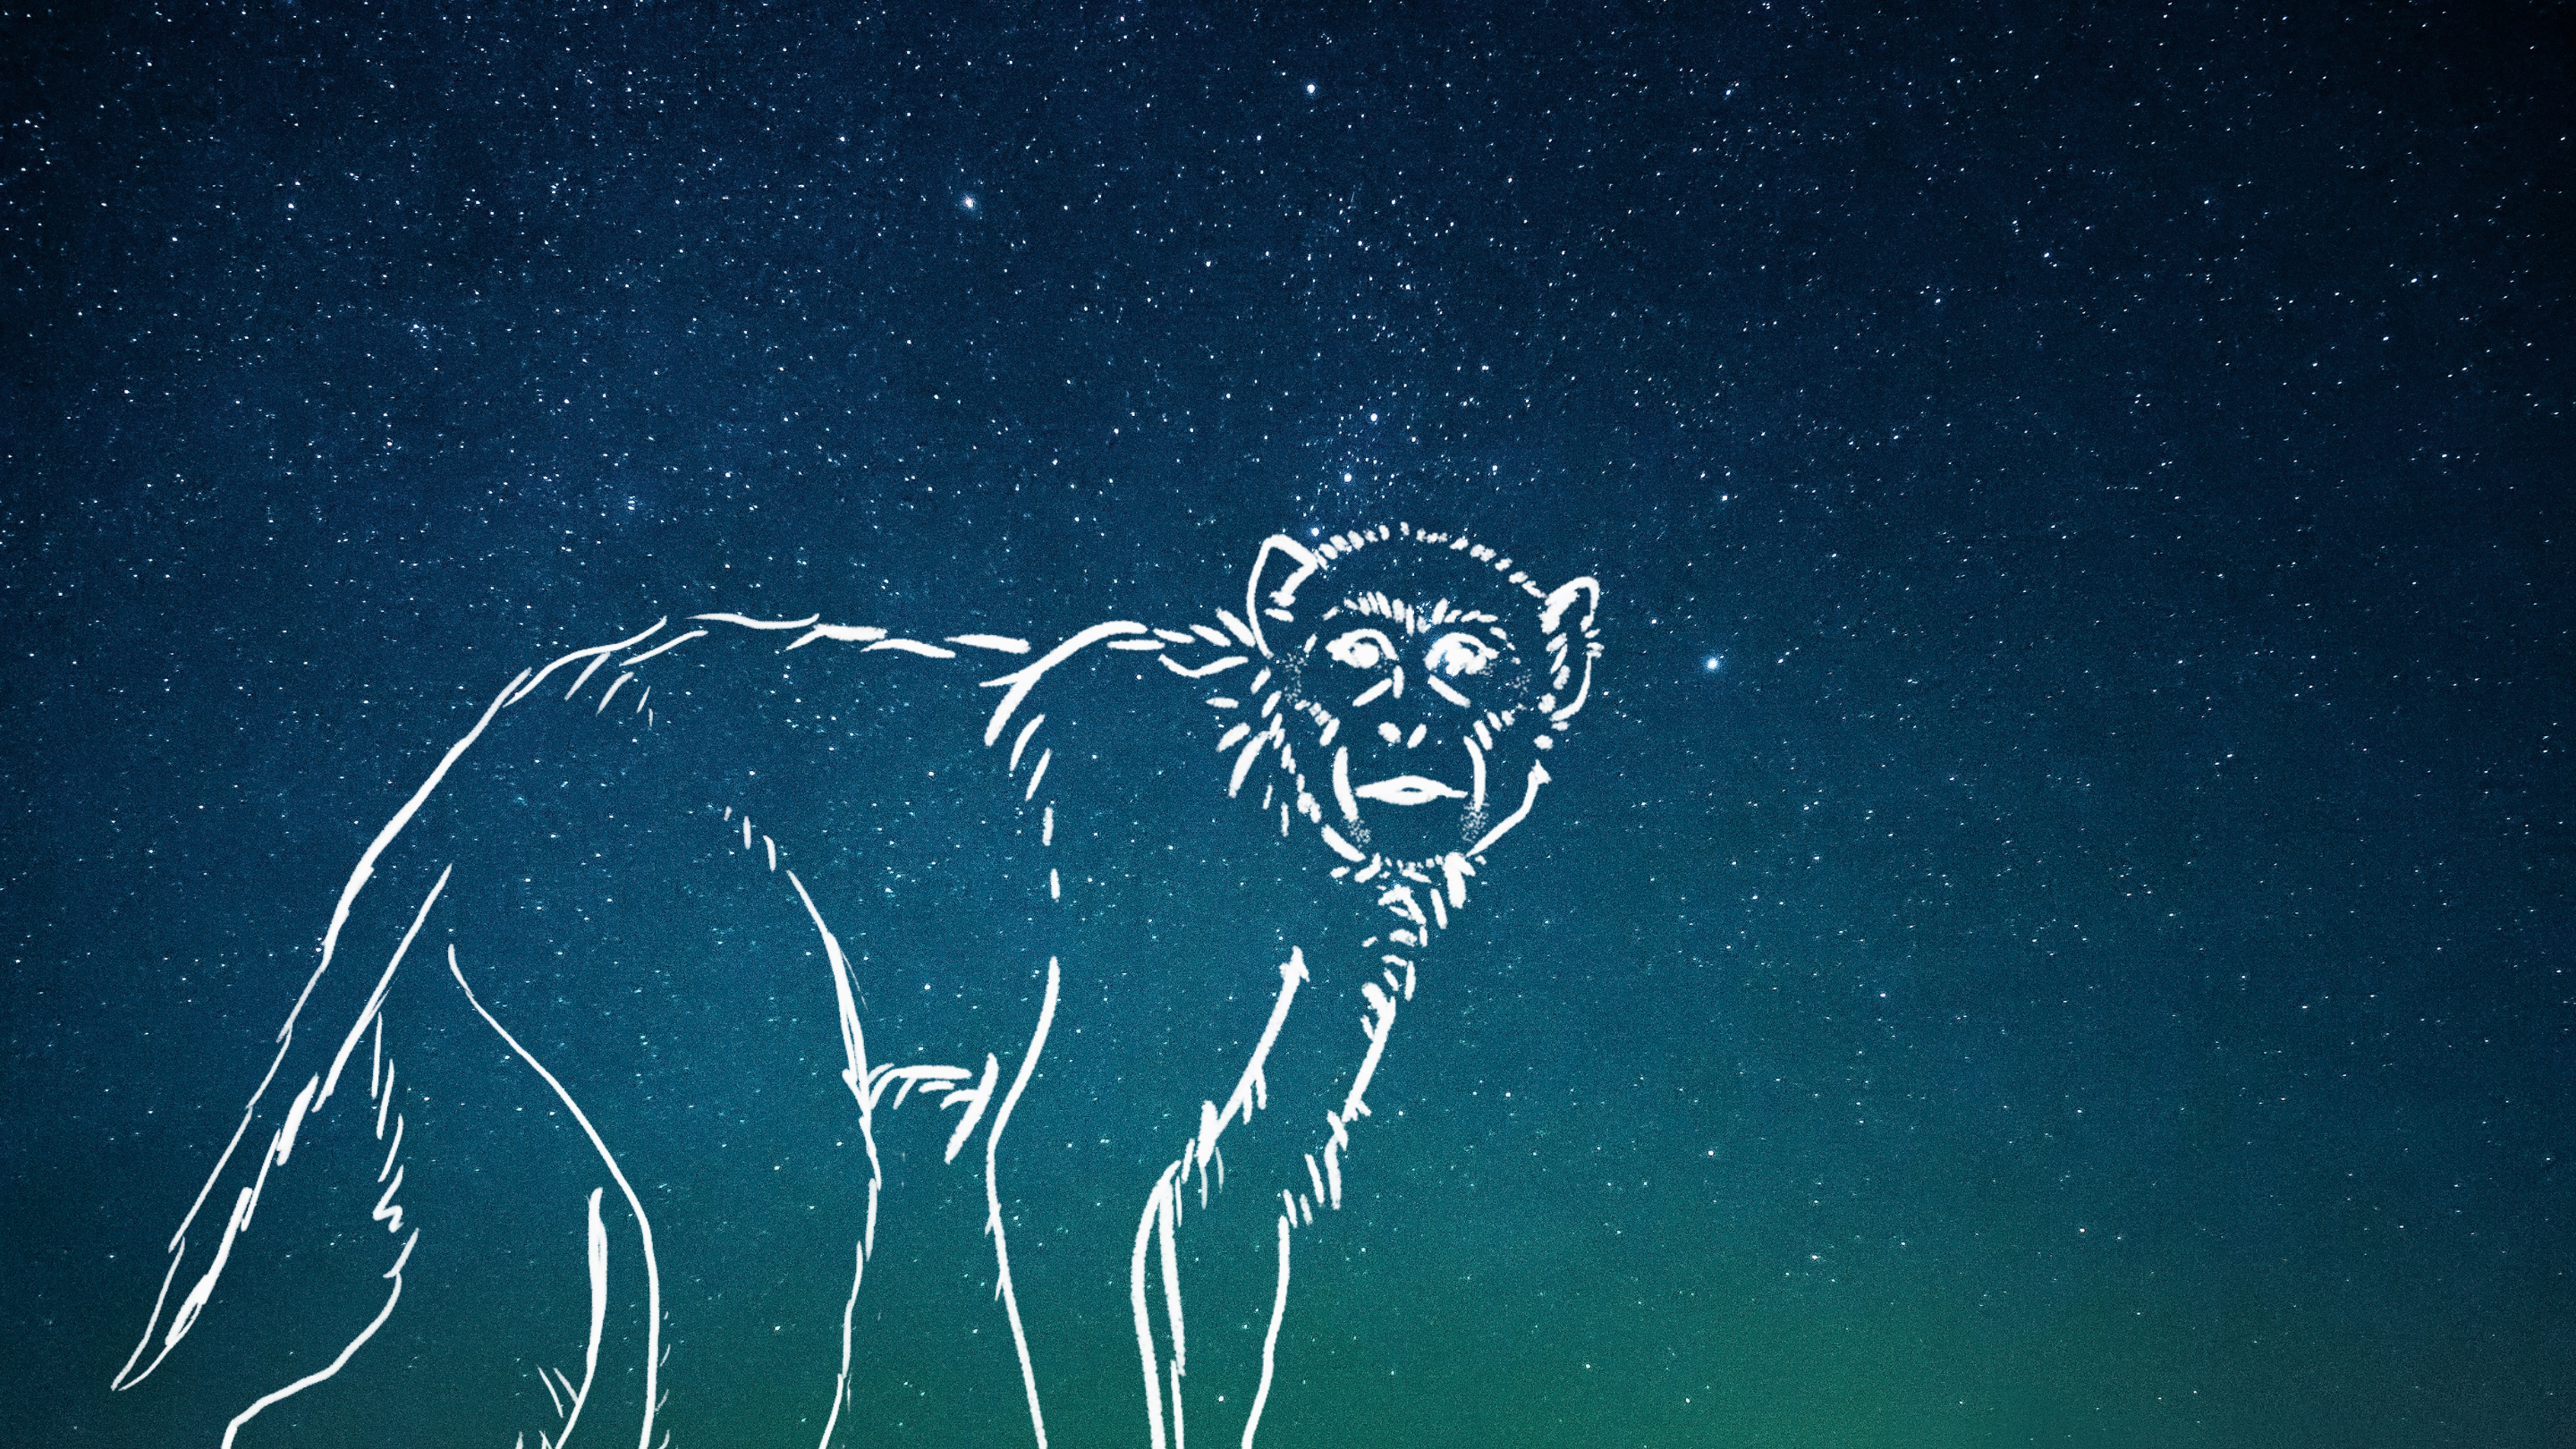 A loose sketch of a monkey over a blue-green starry sky